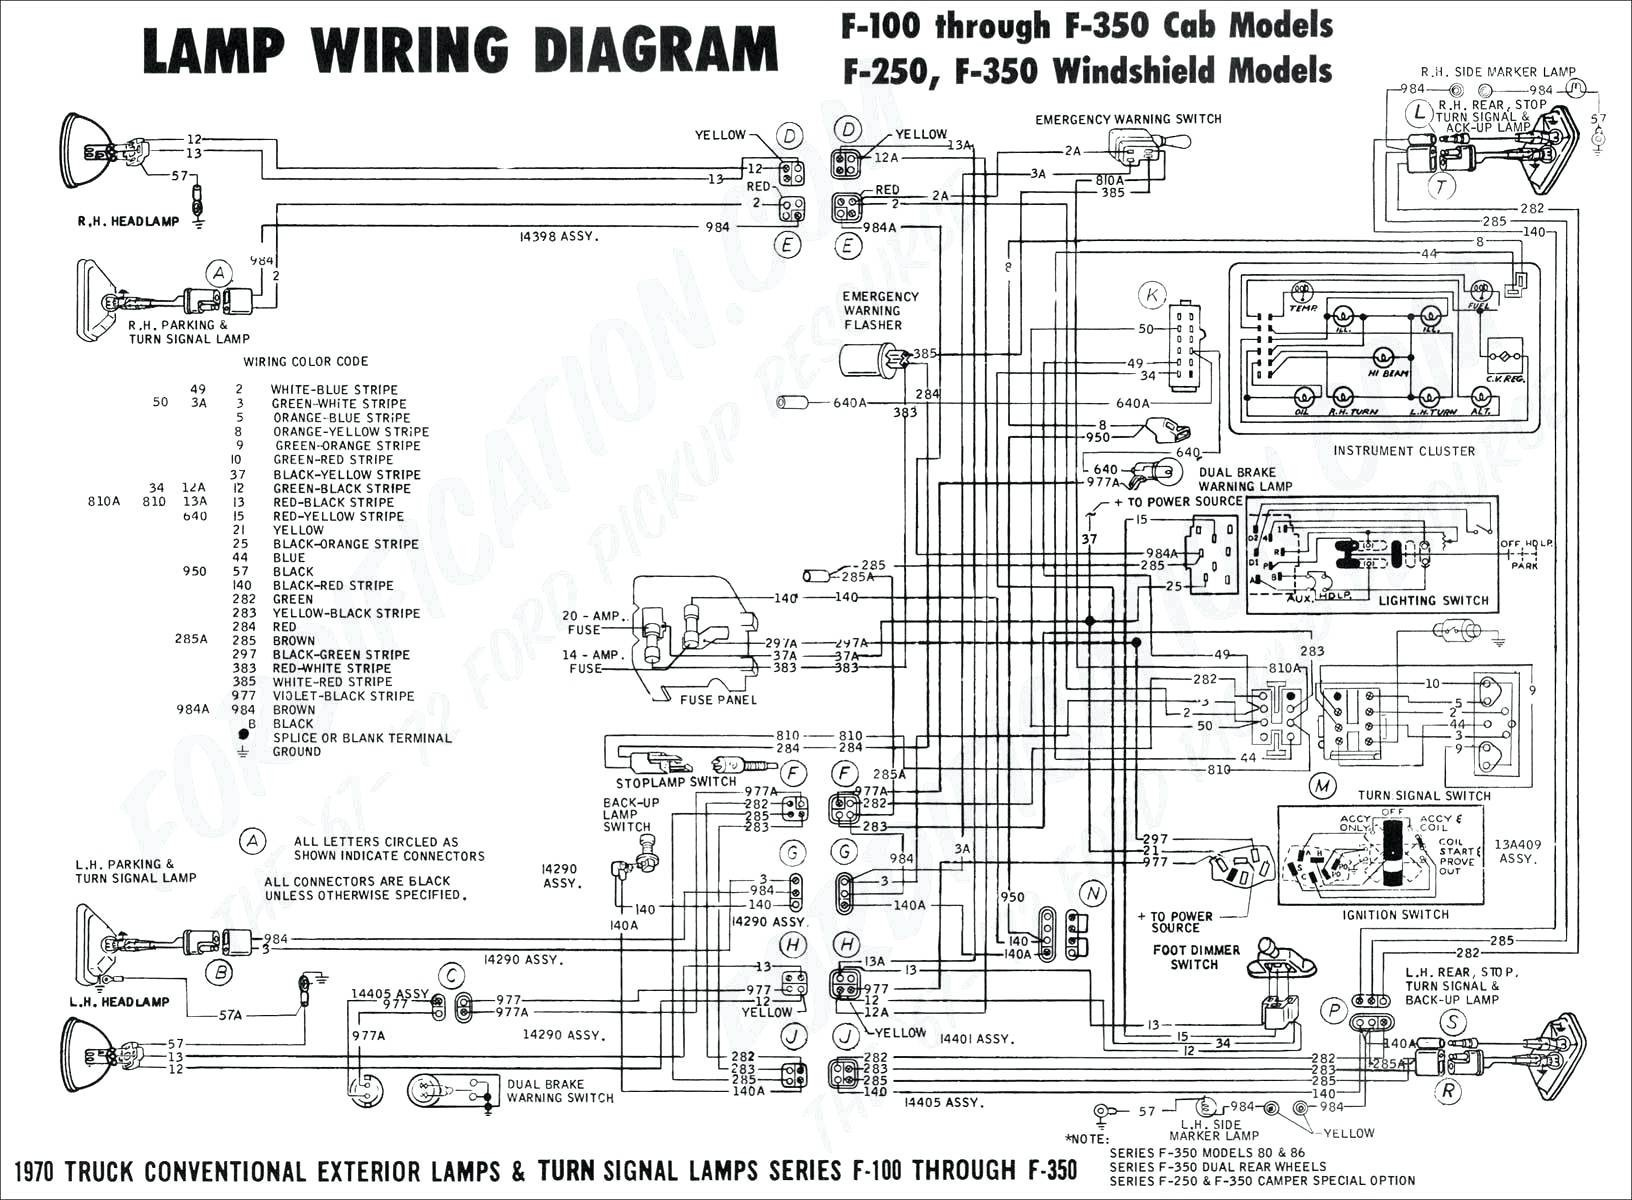 1996 Honda Civic Ex Engine Diagram Honda Civic Wiring Schematics Wiring Diagram Datasource Of 1996 Honda Civic Ex Engine Diagram 2002 Honda Civic Fuse Diagram Wiring Diagram Database